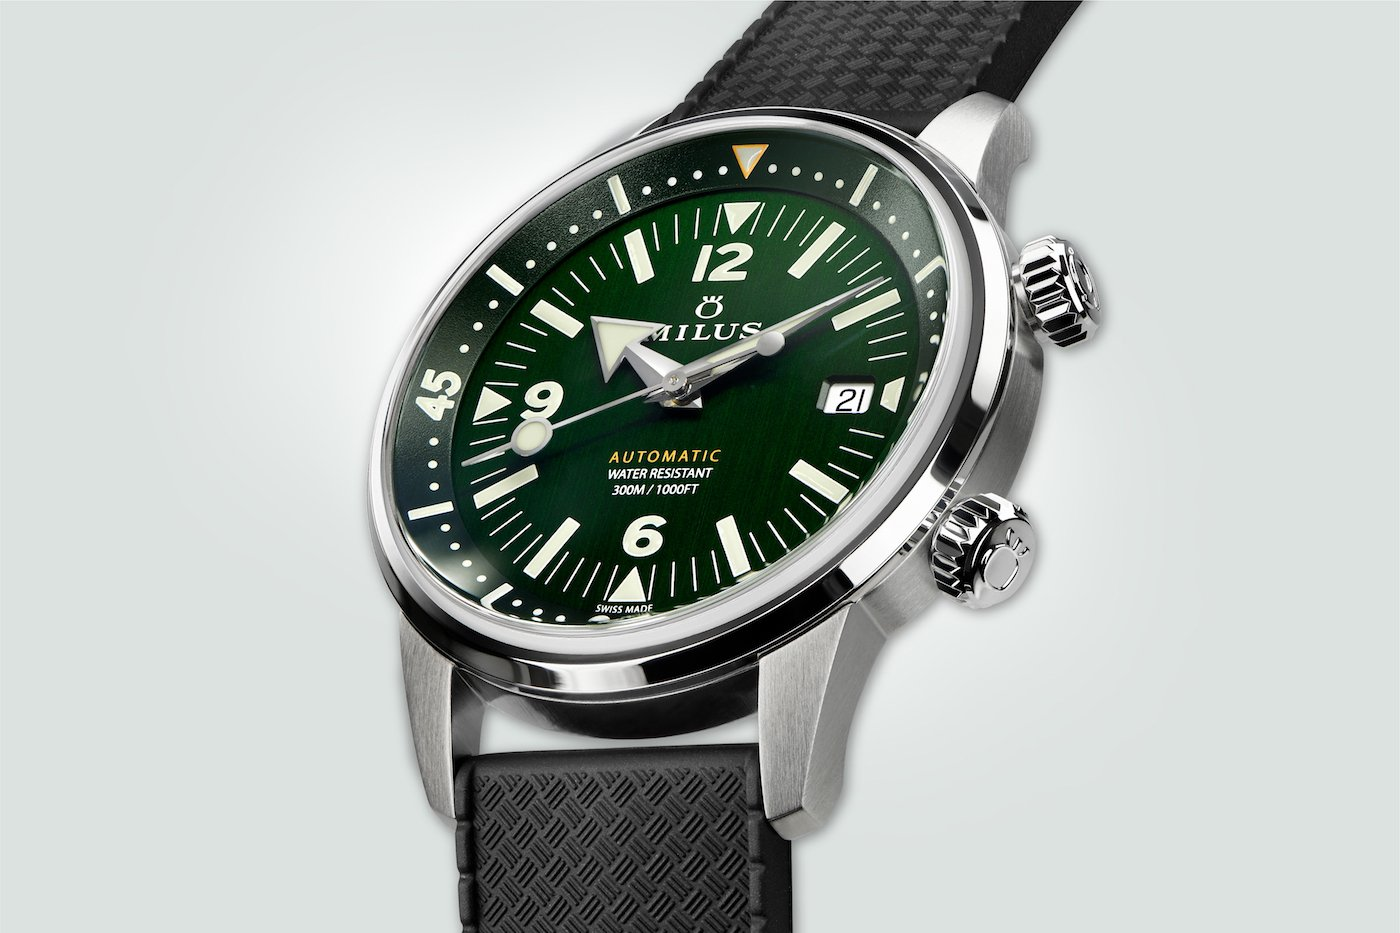 ARCHIMÈDES by Milus - Wild Green, MIH 01-001-180/230, CHF 1919.00